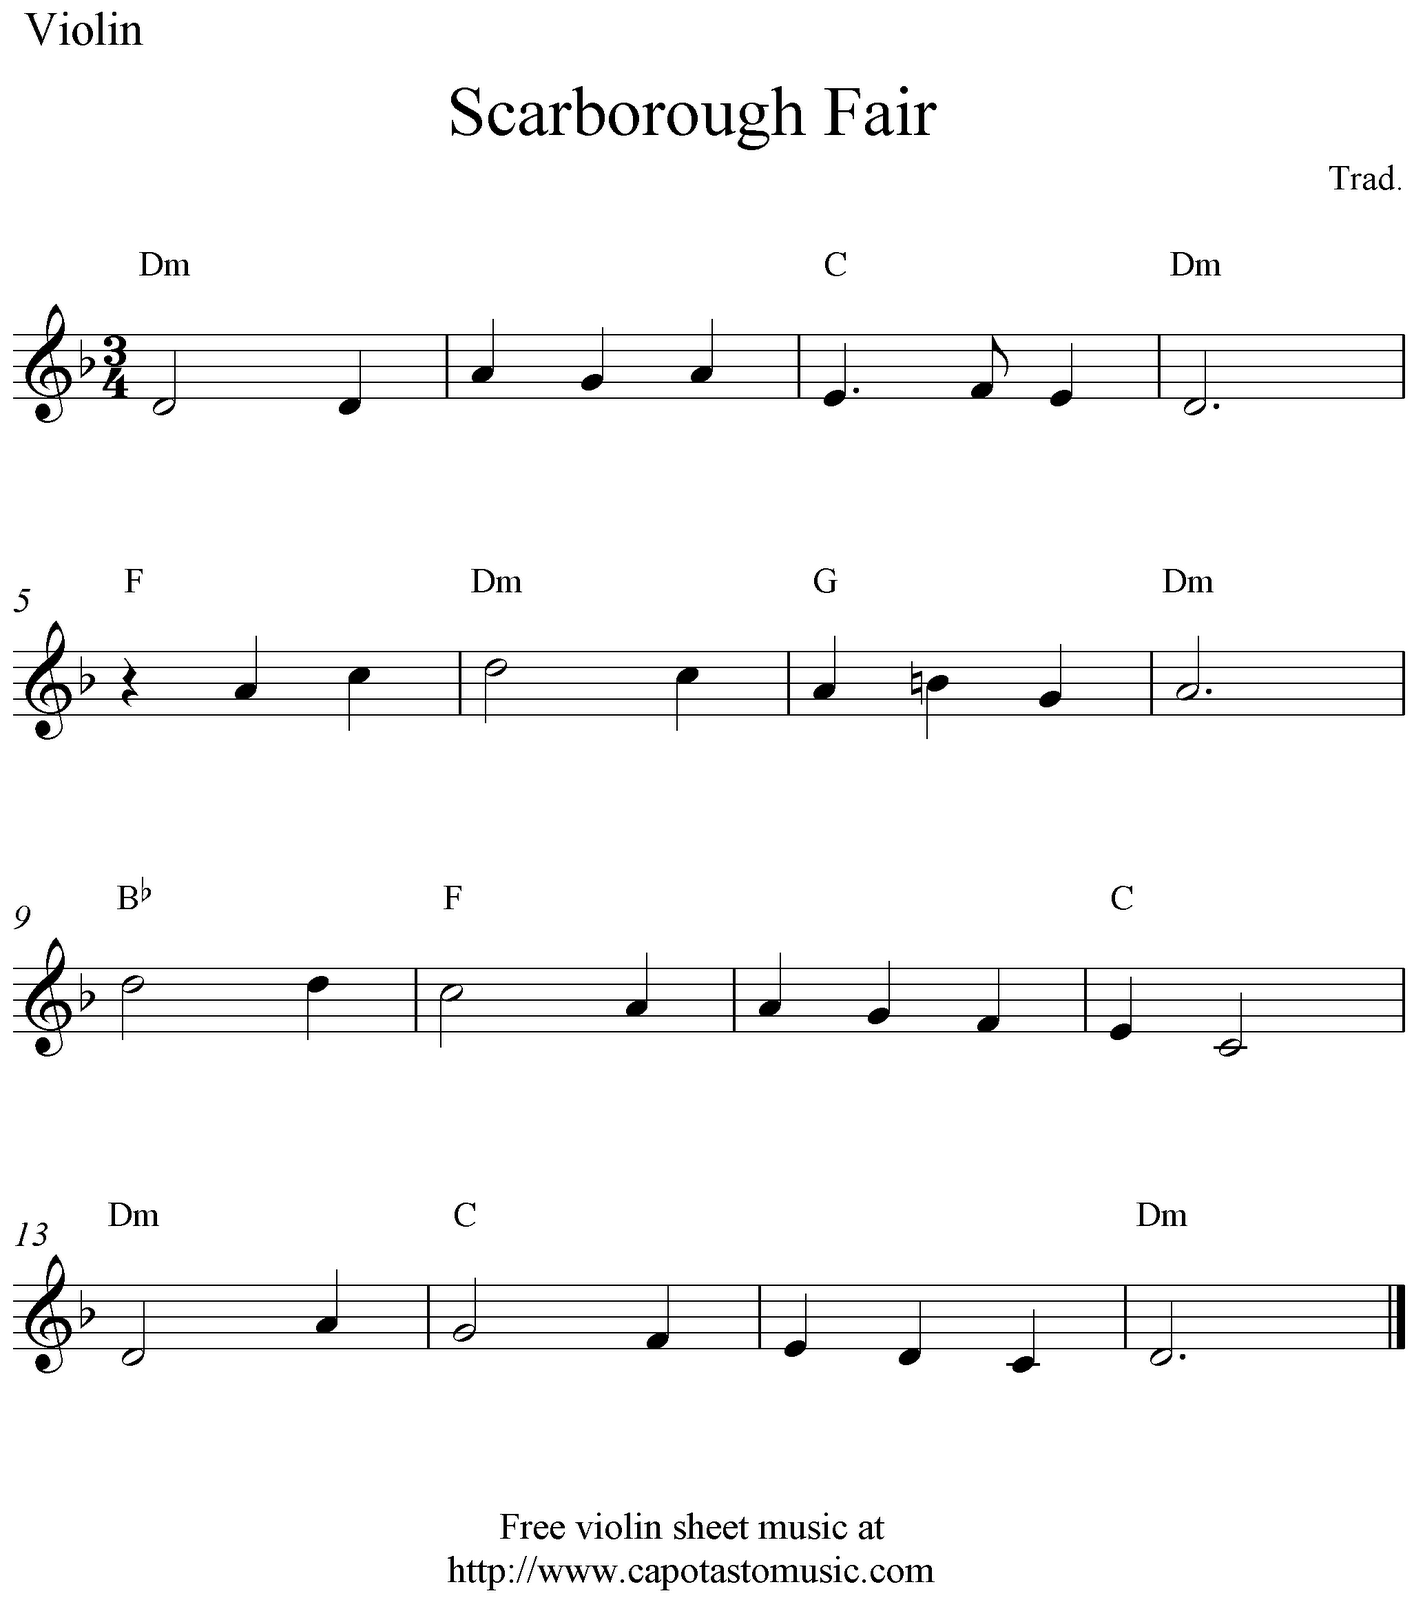 Scarborough Fair, Free Violin Sheet Music Notes